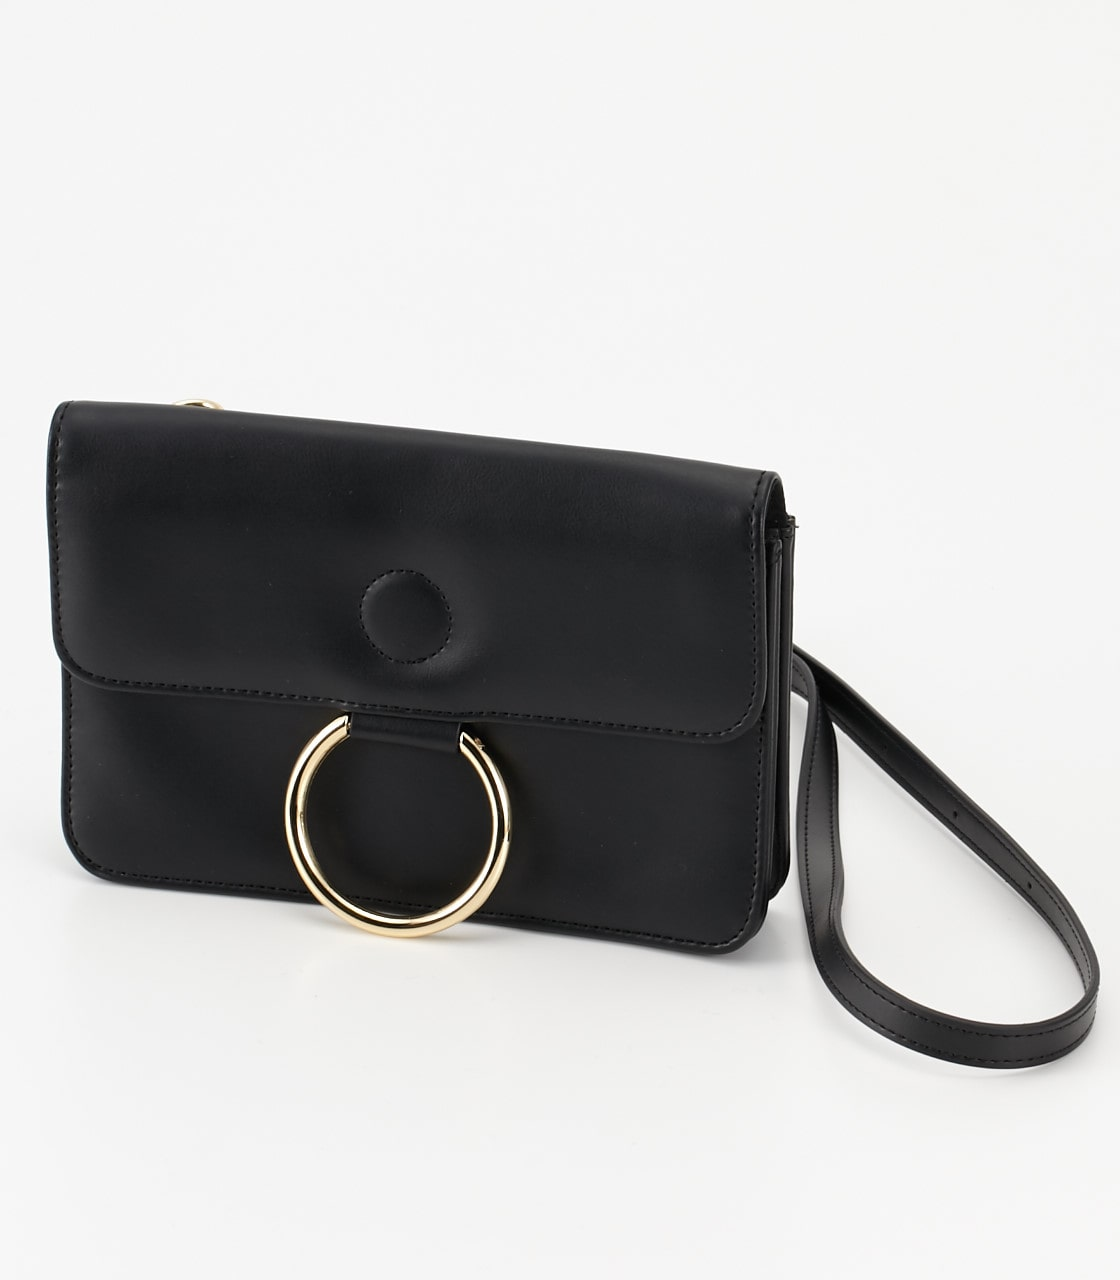 【AZUL BY MOUSSY】サークルリングウォレットバッグ 詳細画像 BLK 7